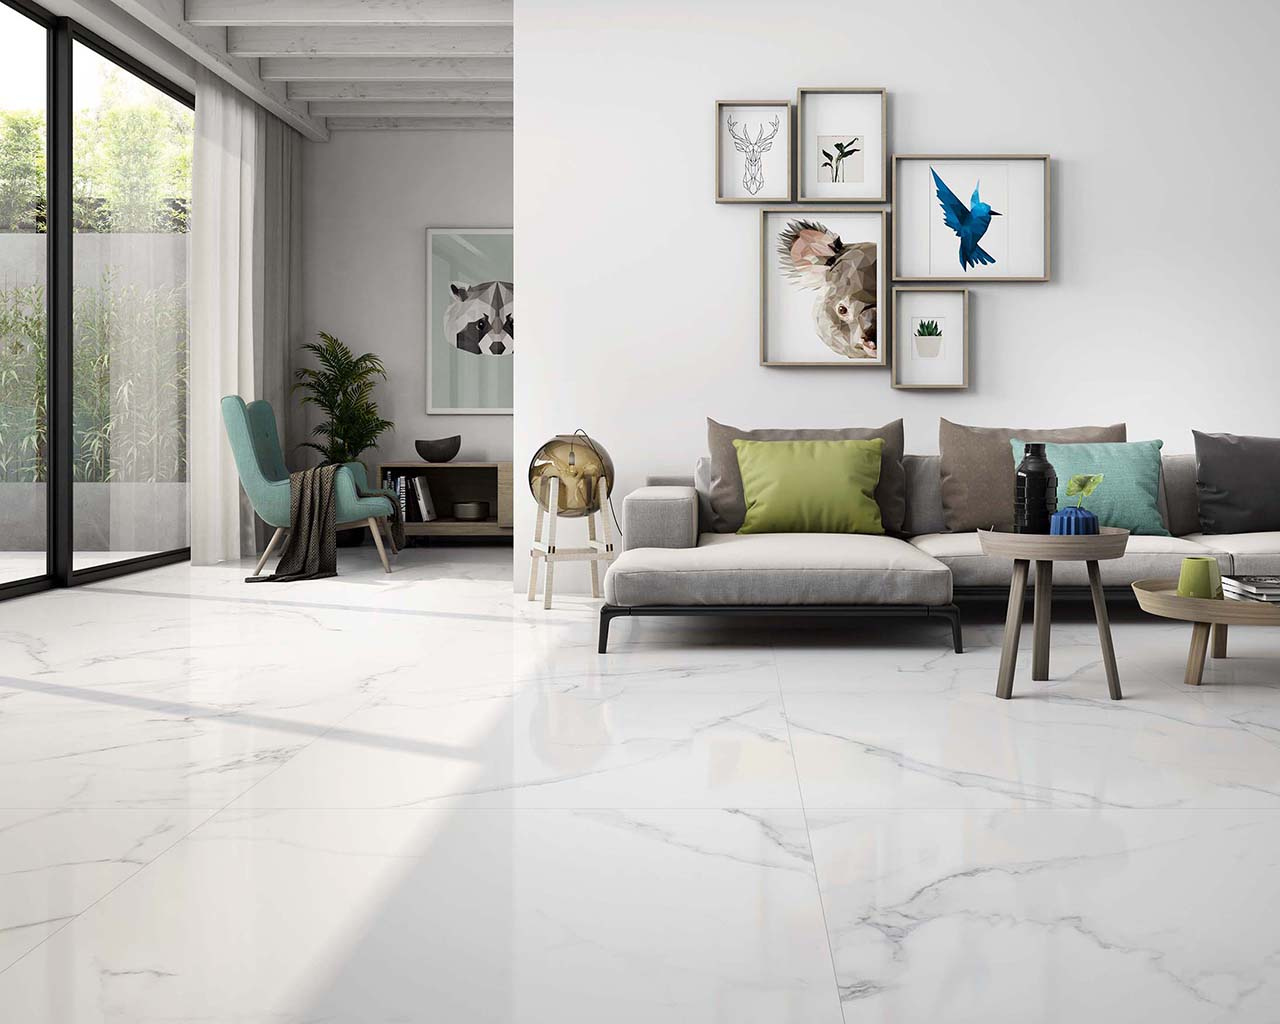 A living room floor with our Calacatta Pulido 24 x 24 porcelain tile.